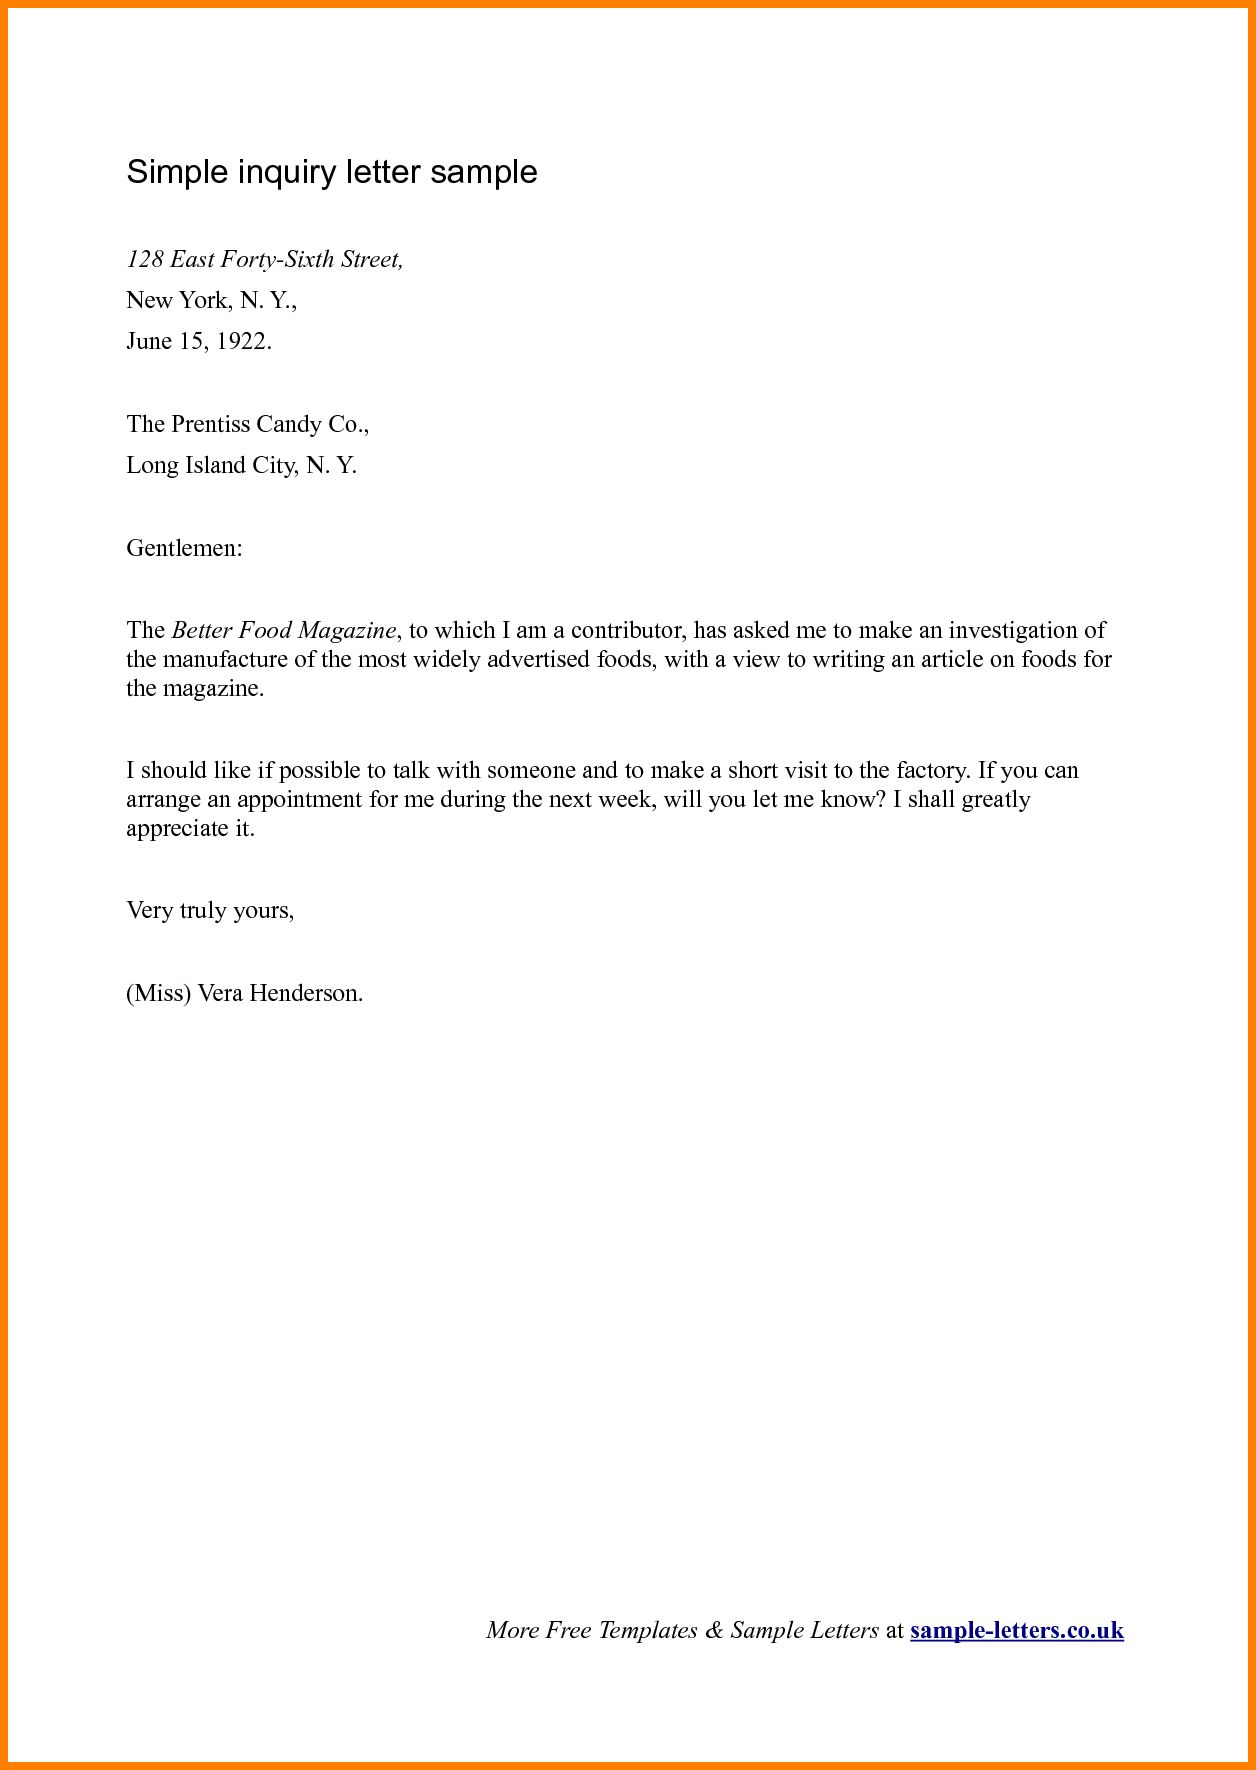 The Outstanding Formal Letters For Leave Application There Are Two Common For Mo Formal Business Letter Format Business Letter Template Business Letter Format [ 1770 x 1256 Pixel ]